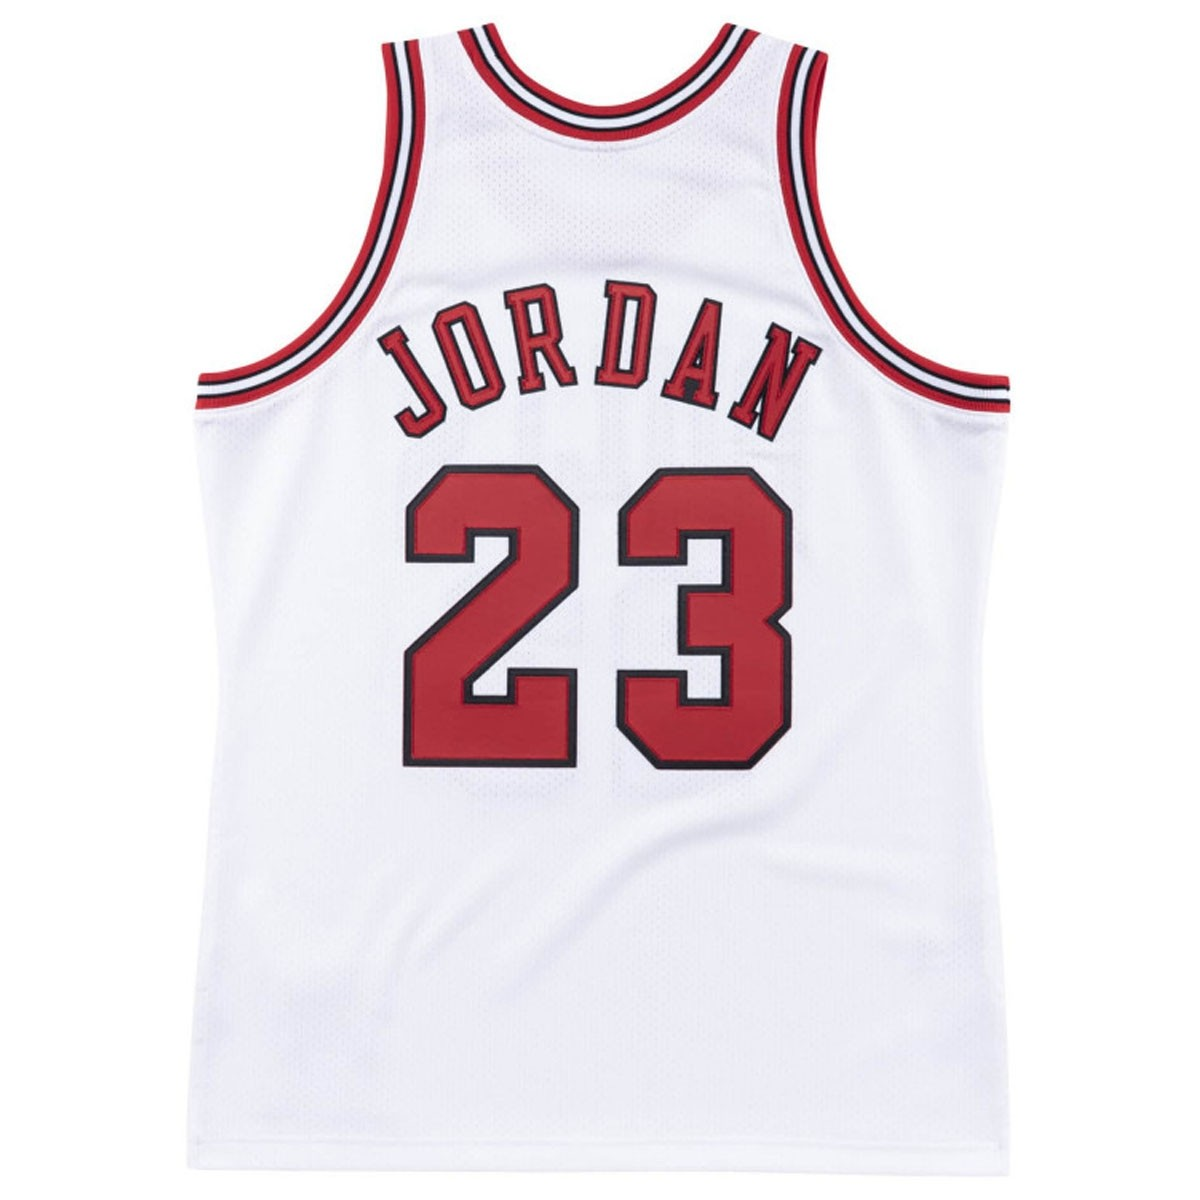 Mitchell & Ness Jordan Authentic Jersey '96-97 Finals Home' CBUWHIT9-6MJO